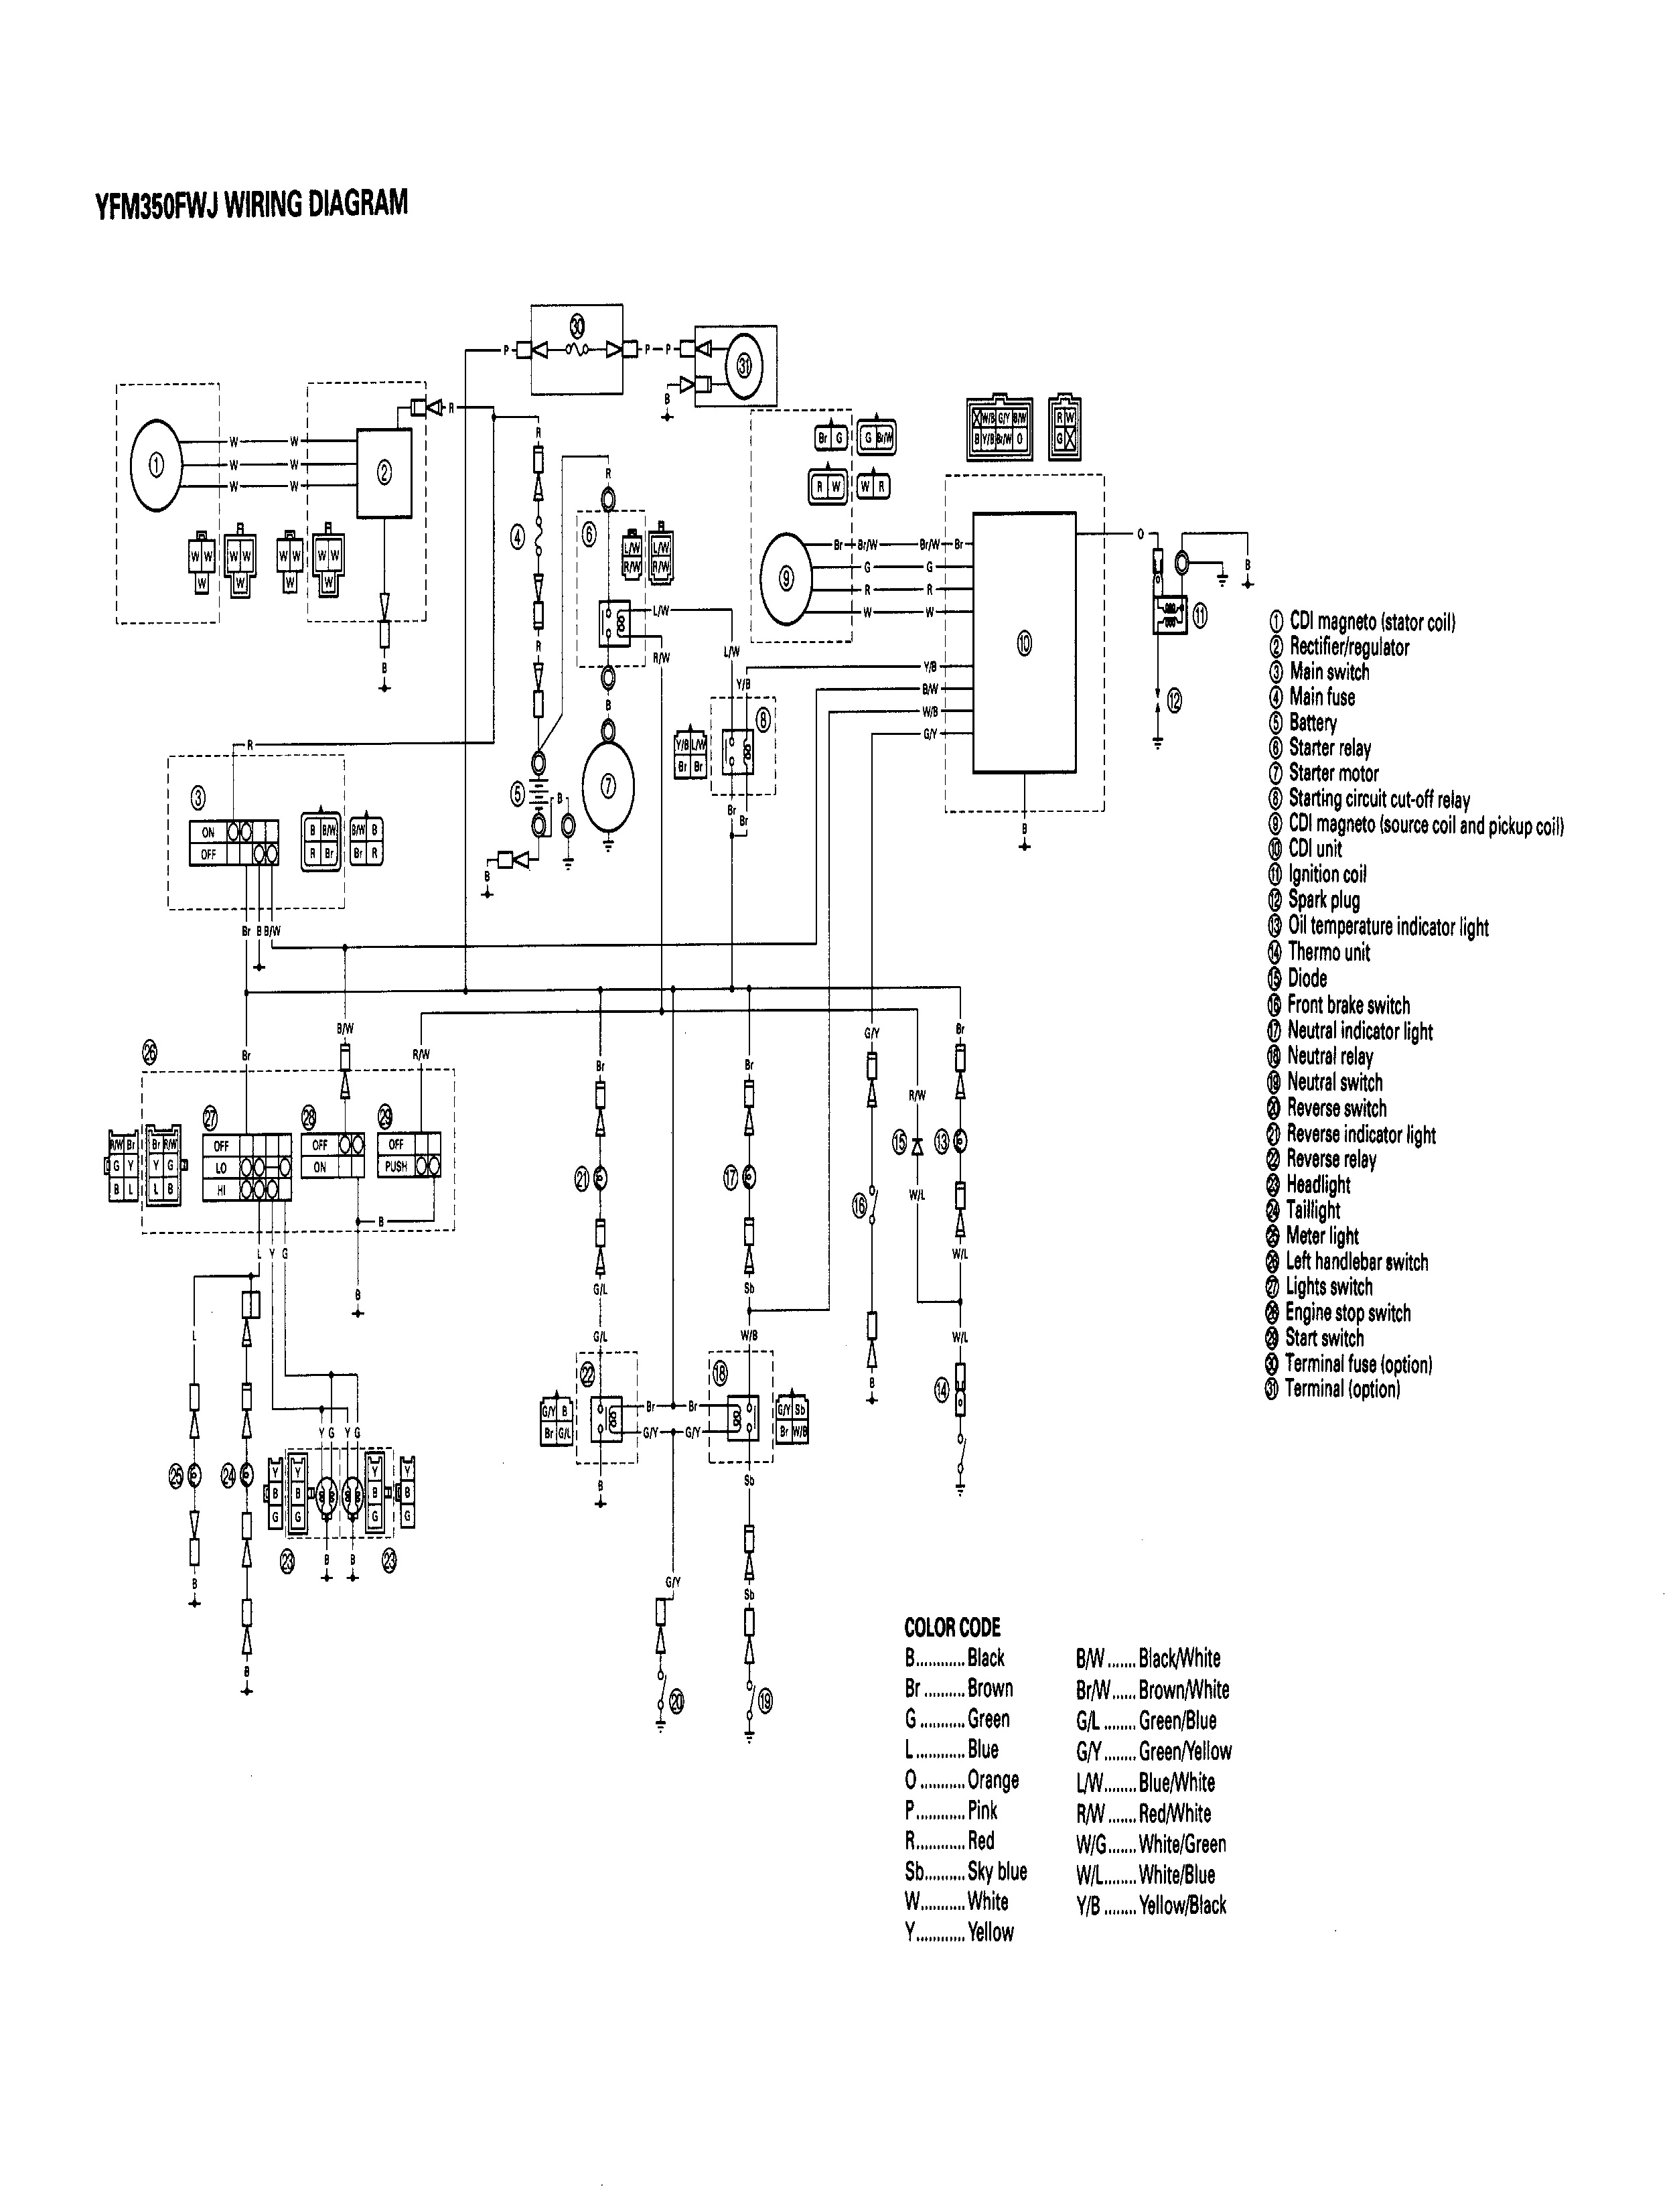 bayou 220 wiring diagram wiring diagrams and schematics kawasaki klf220 a14 parts and diagram 2001 kawasaki mule wiring diagram